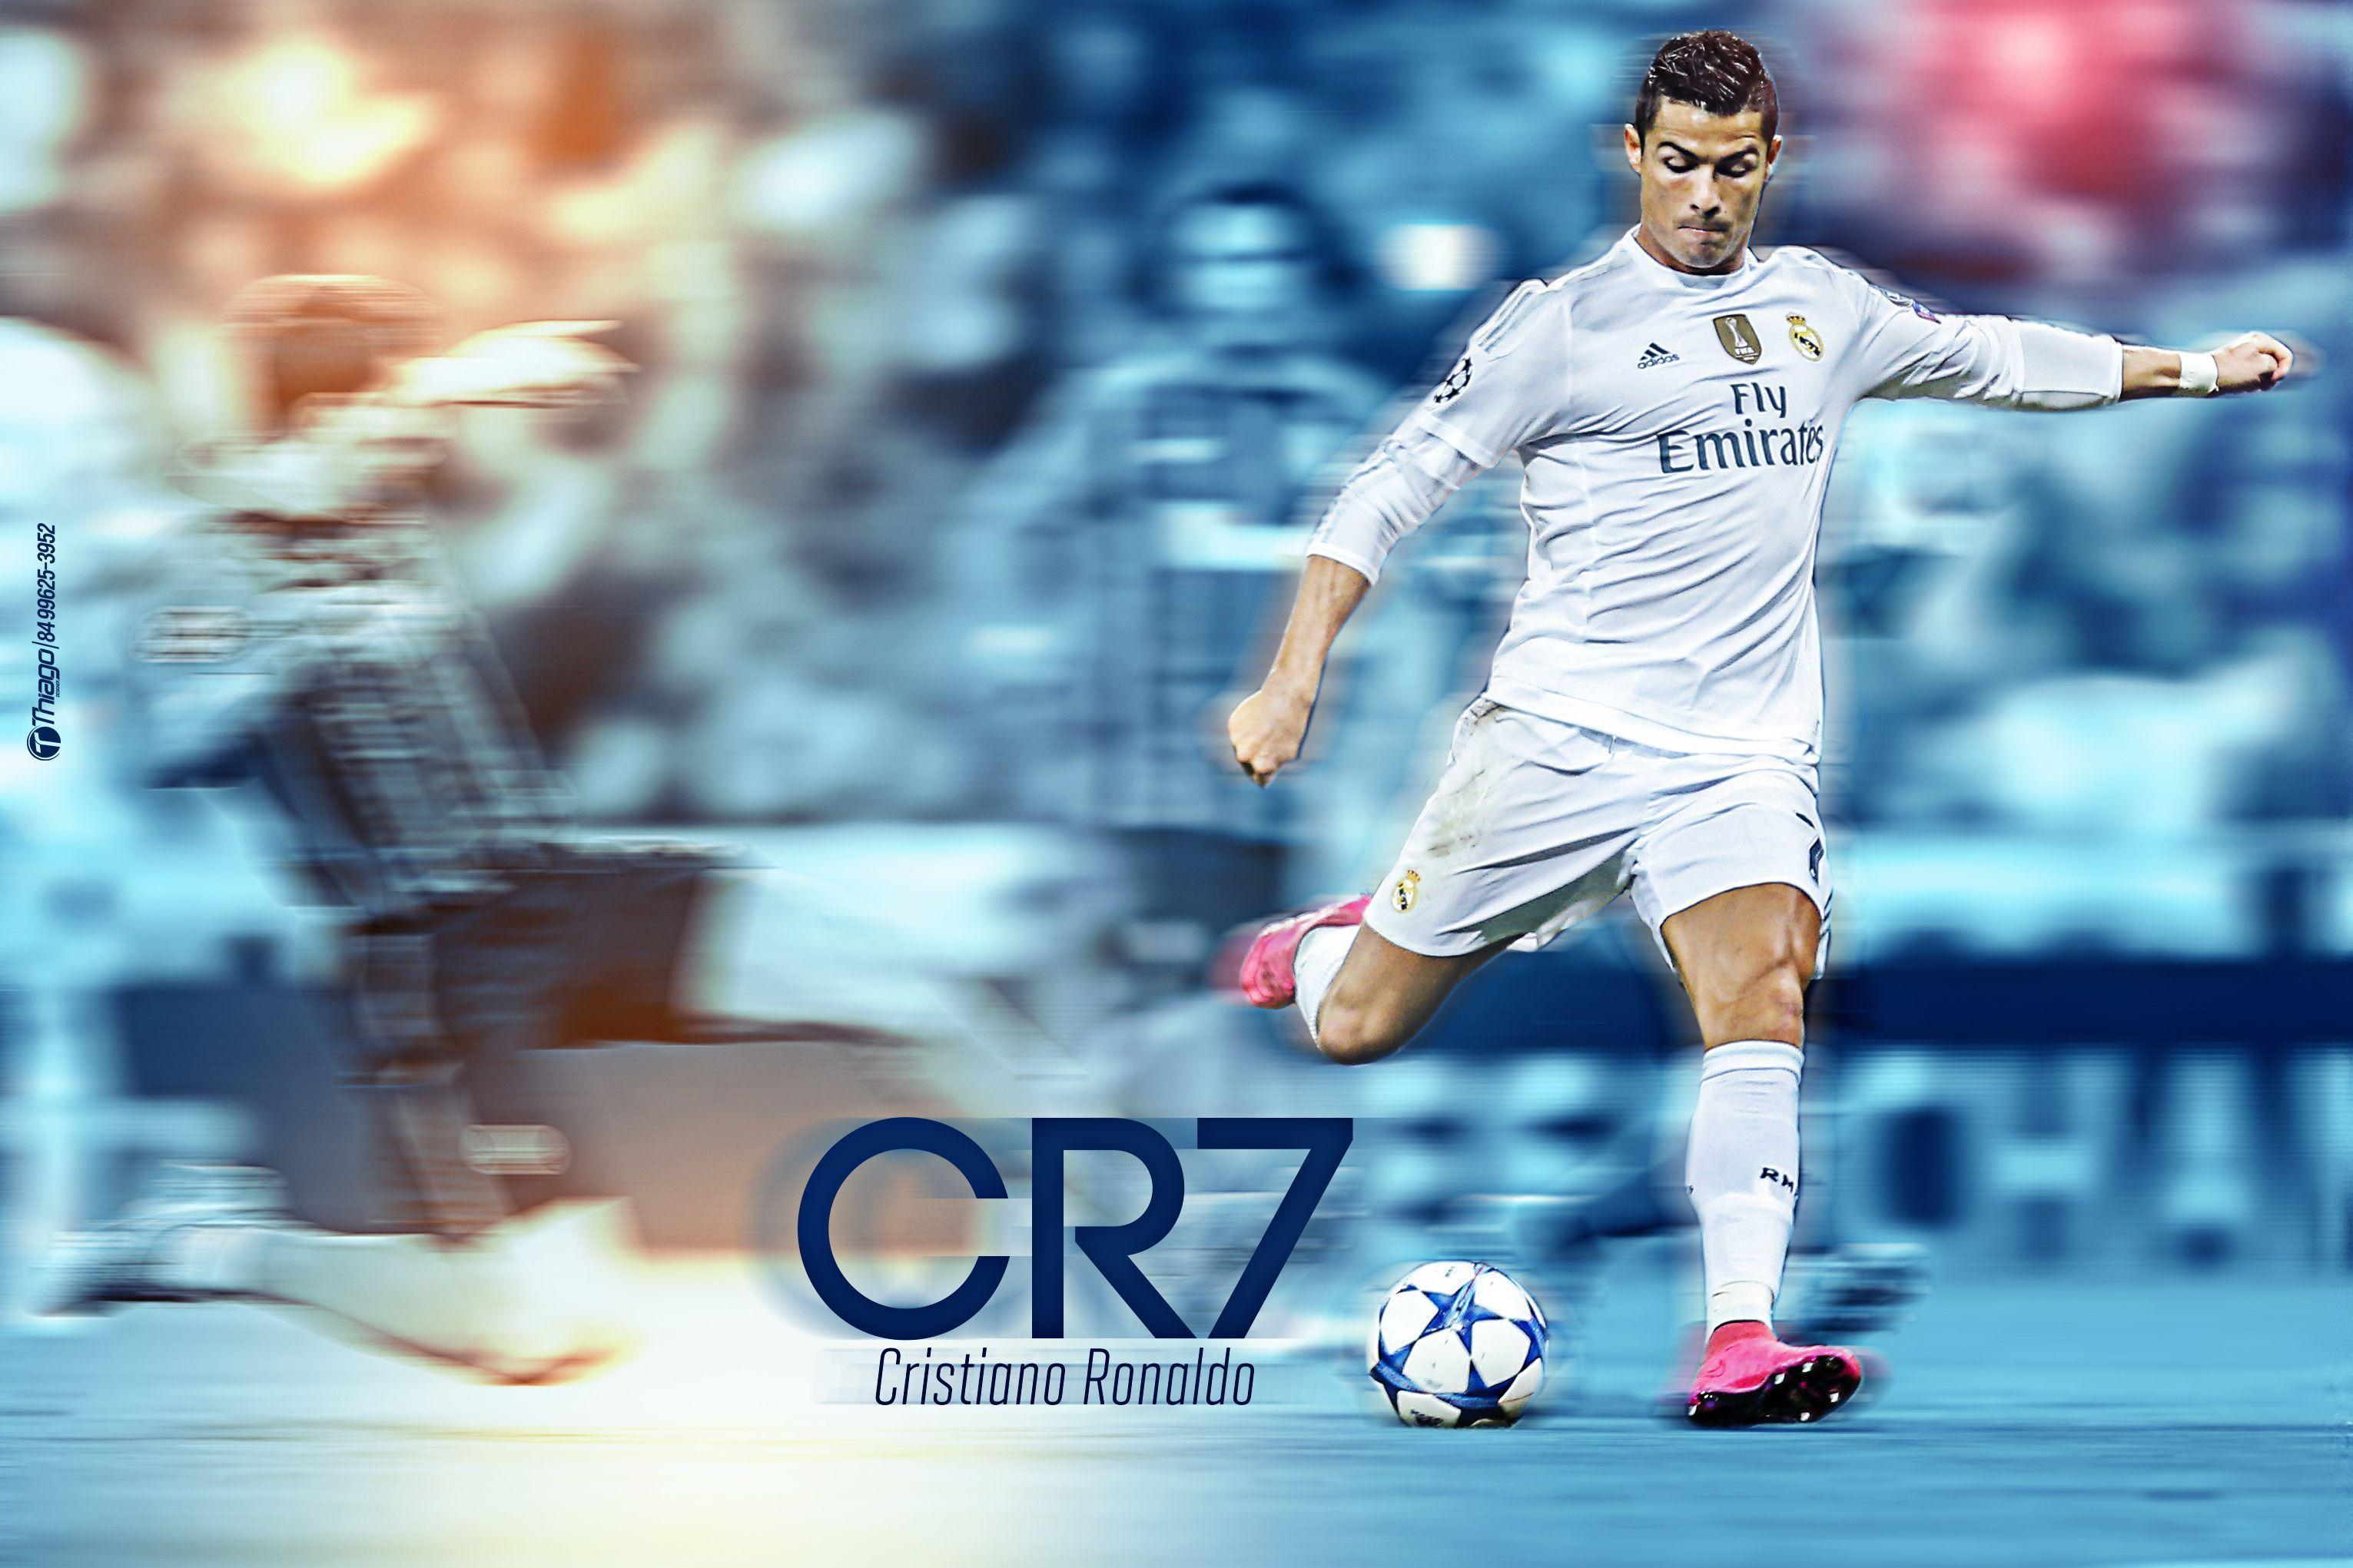 Wallpapers Cr7 2016 3062x2041